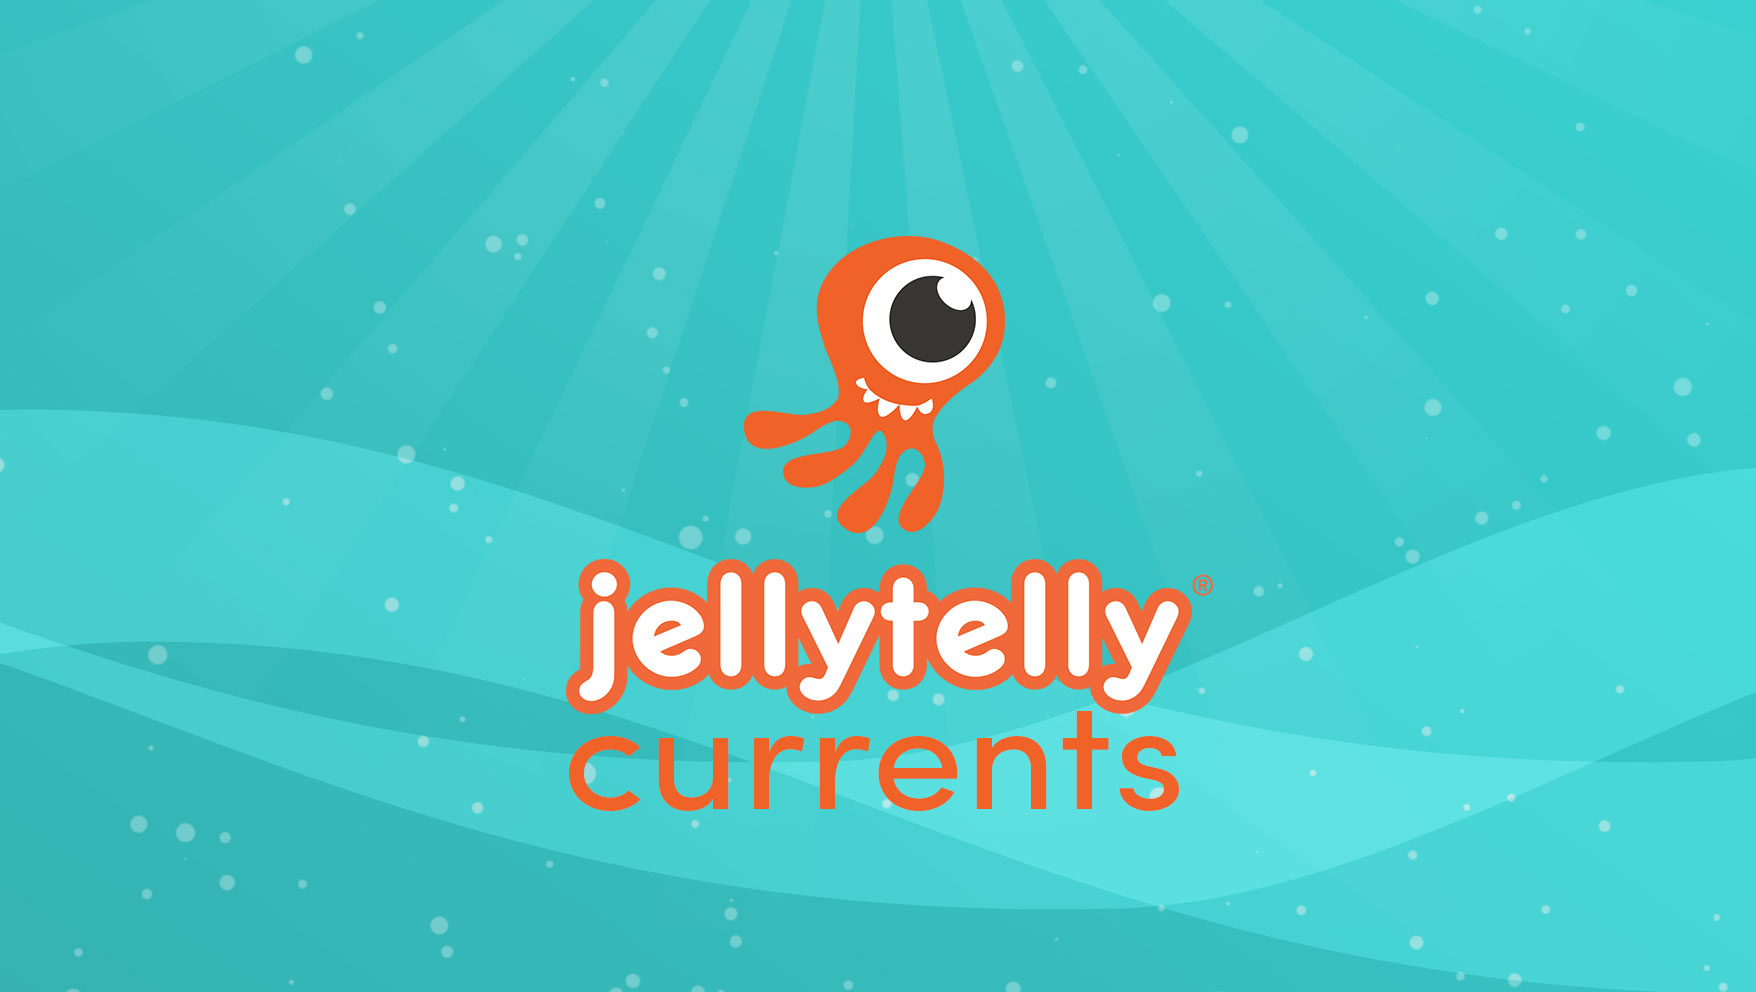 JellyTelly Currents 1/20/17